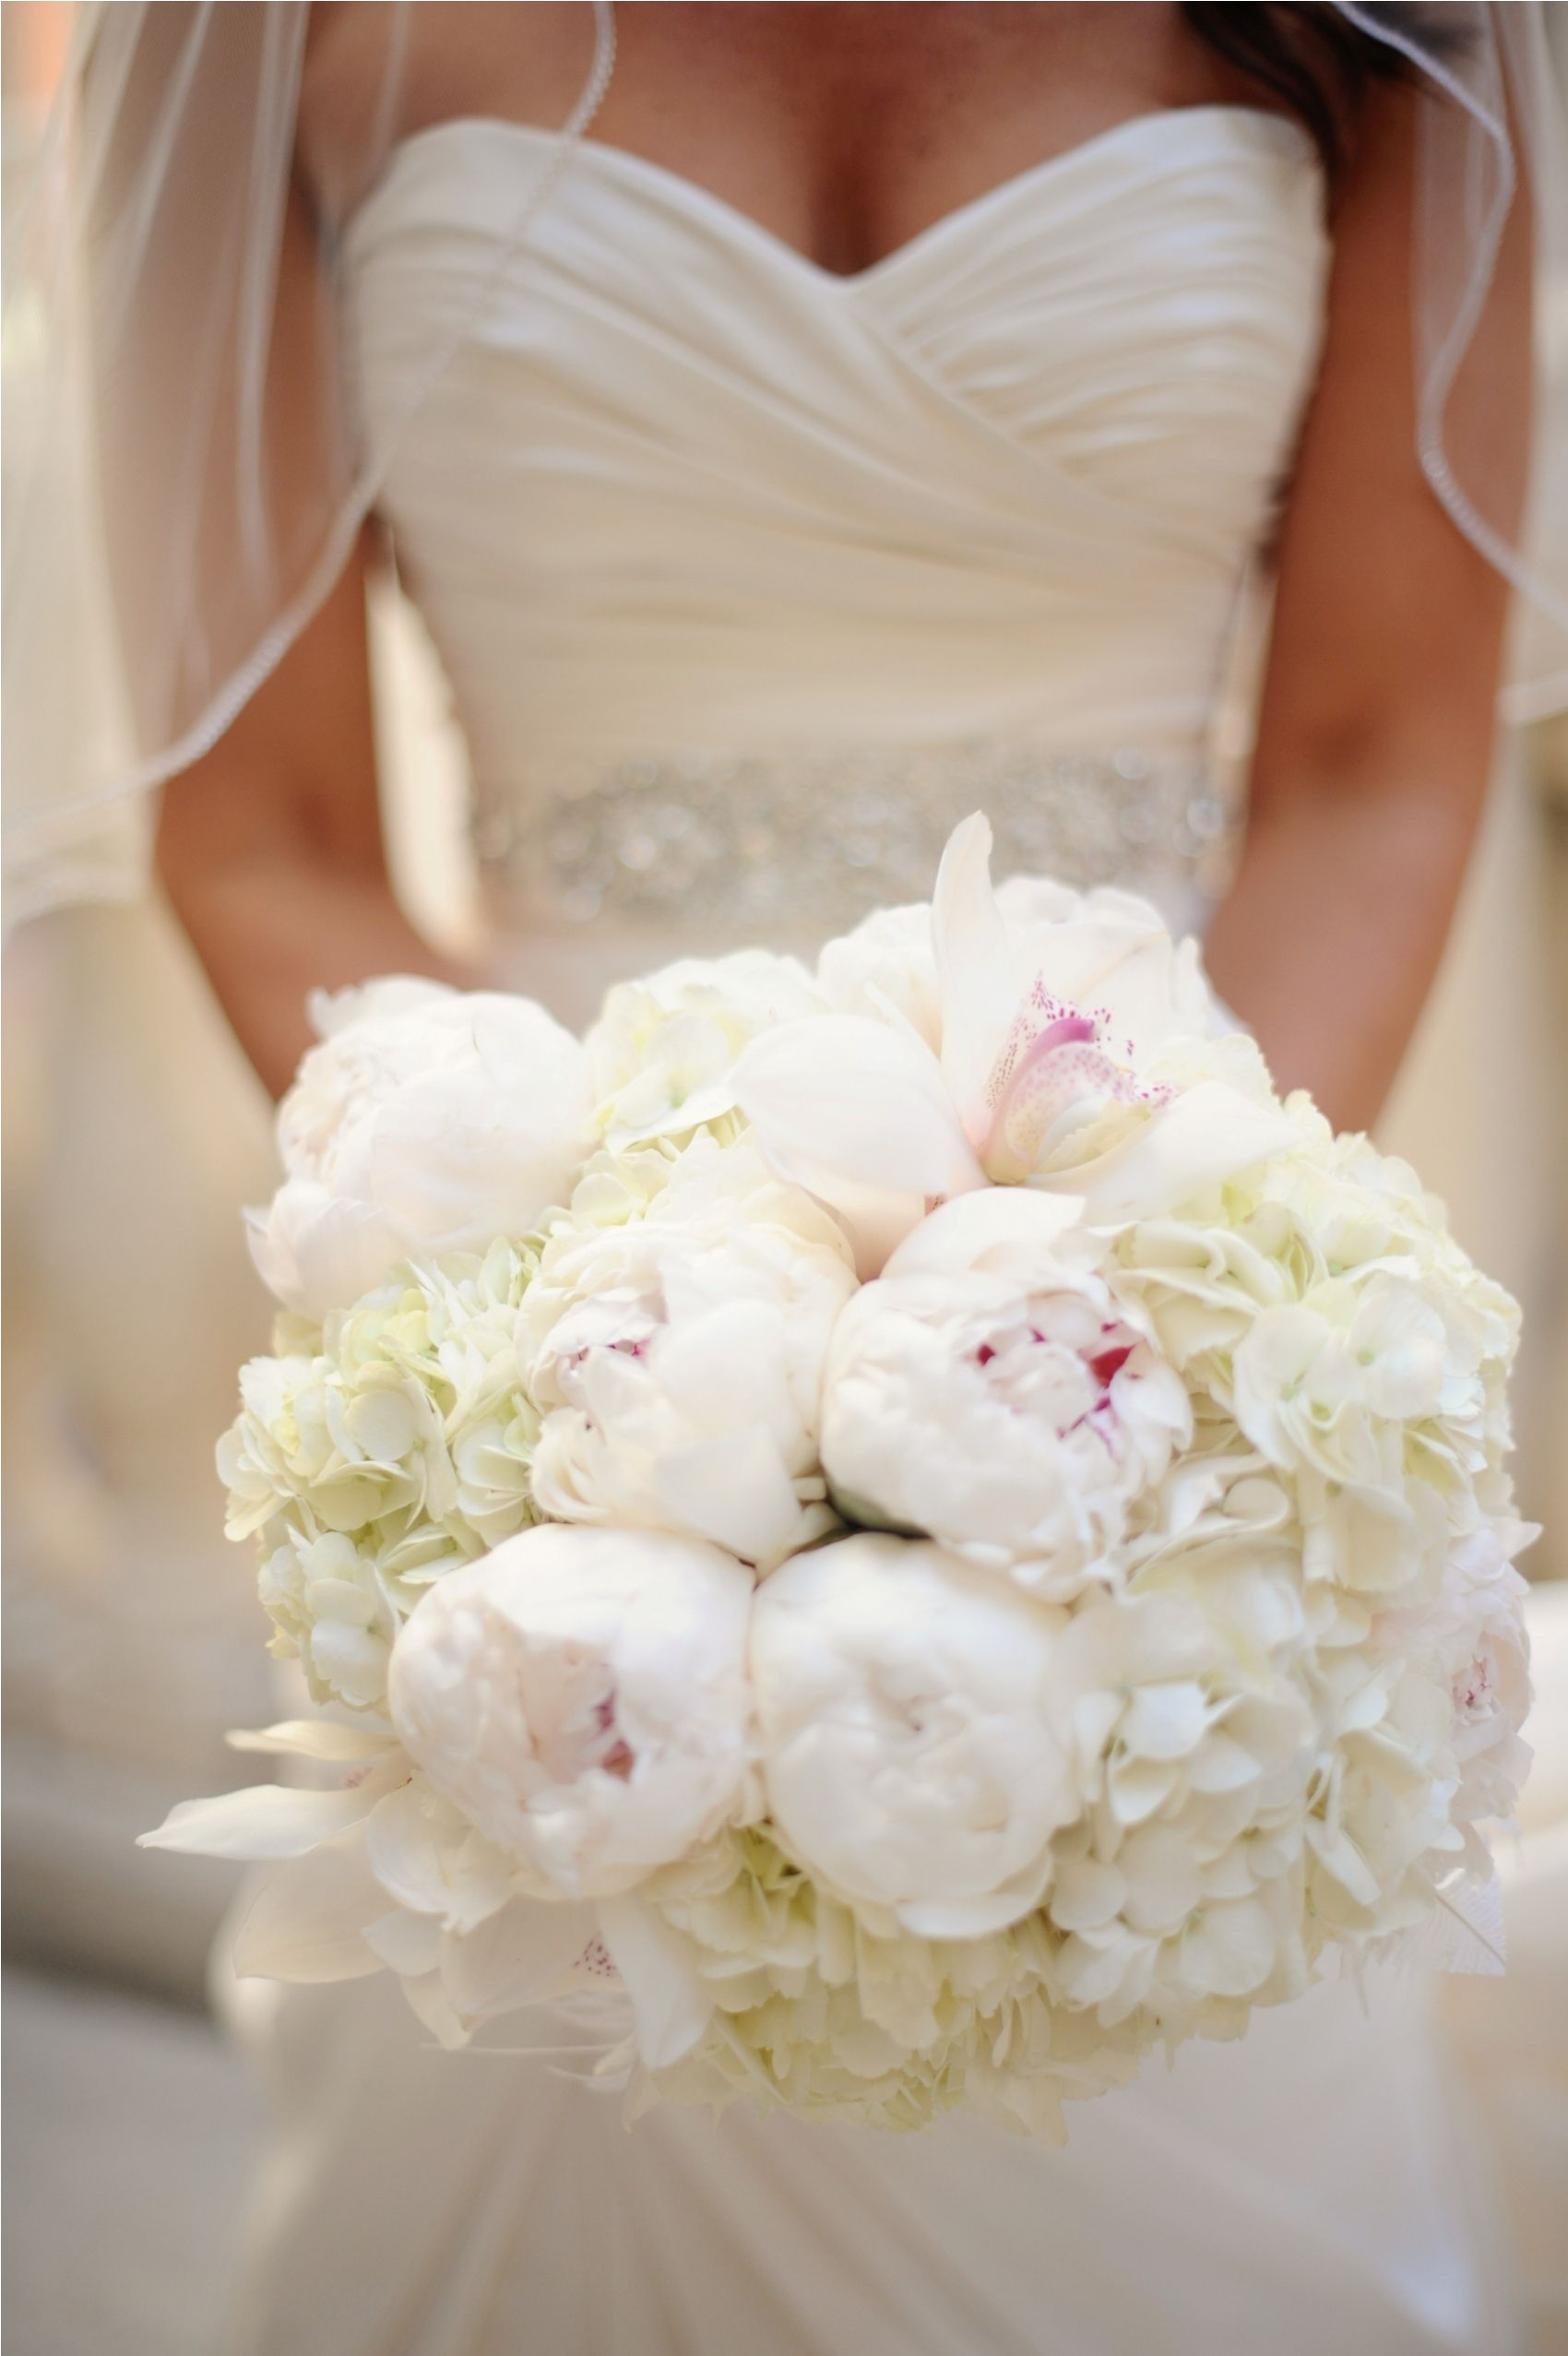 Our brides gorgeous bouquet with crystal stem & feathers hydrangea ...